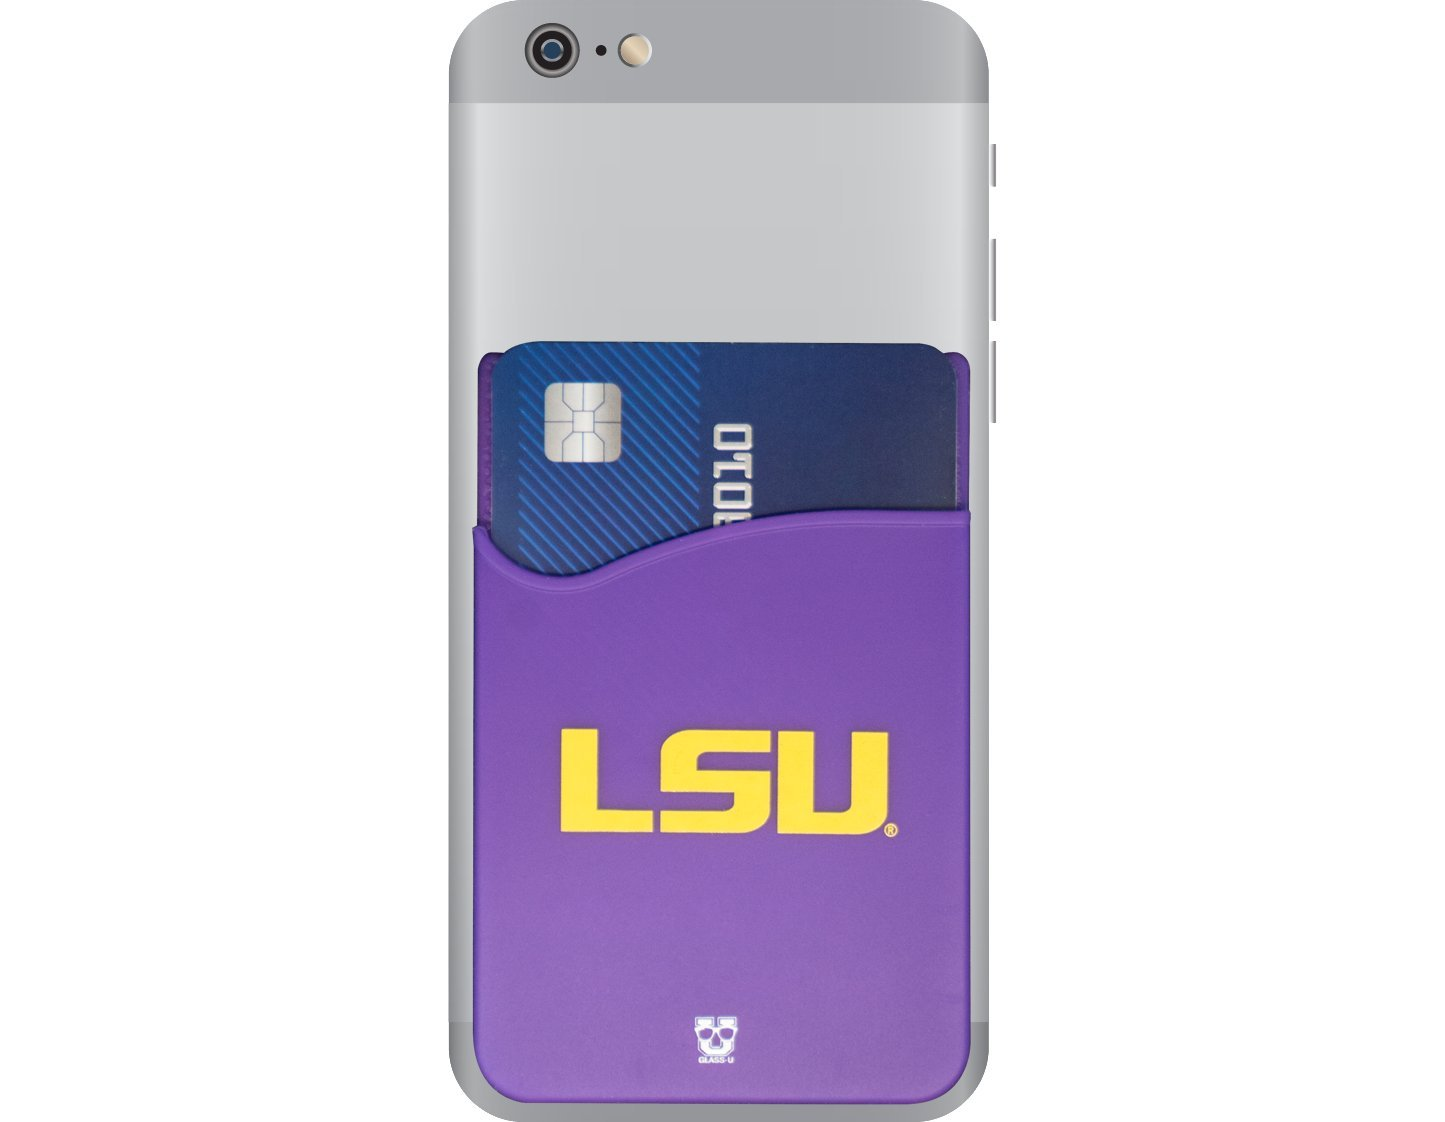 LSU Tigers Adhesive Silicone Cell Phone Wallet/Card Holder for iPhone, Android, Samsung Galaxy, Most Smartphones